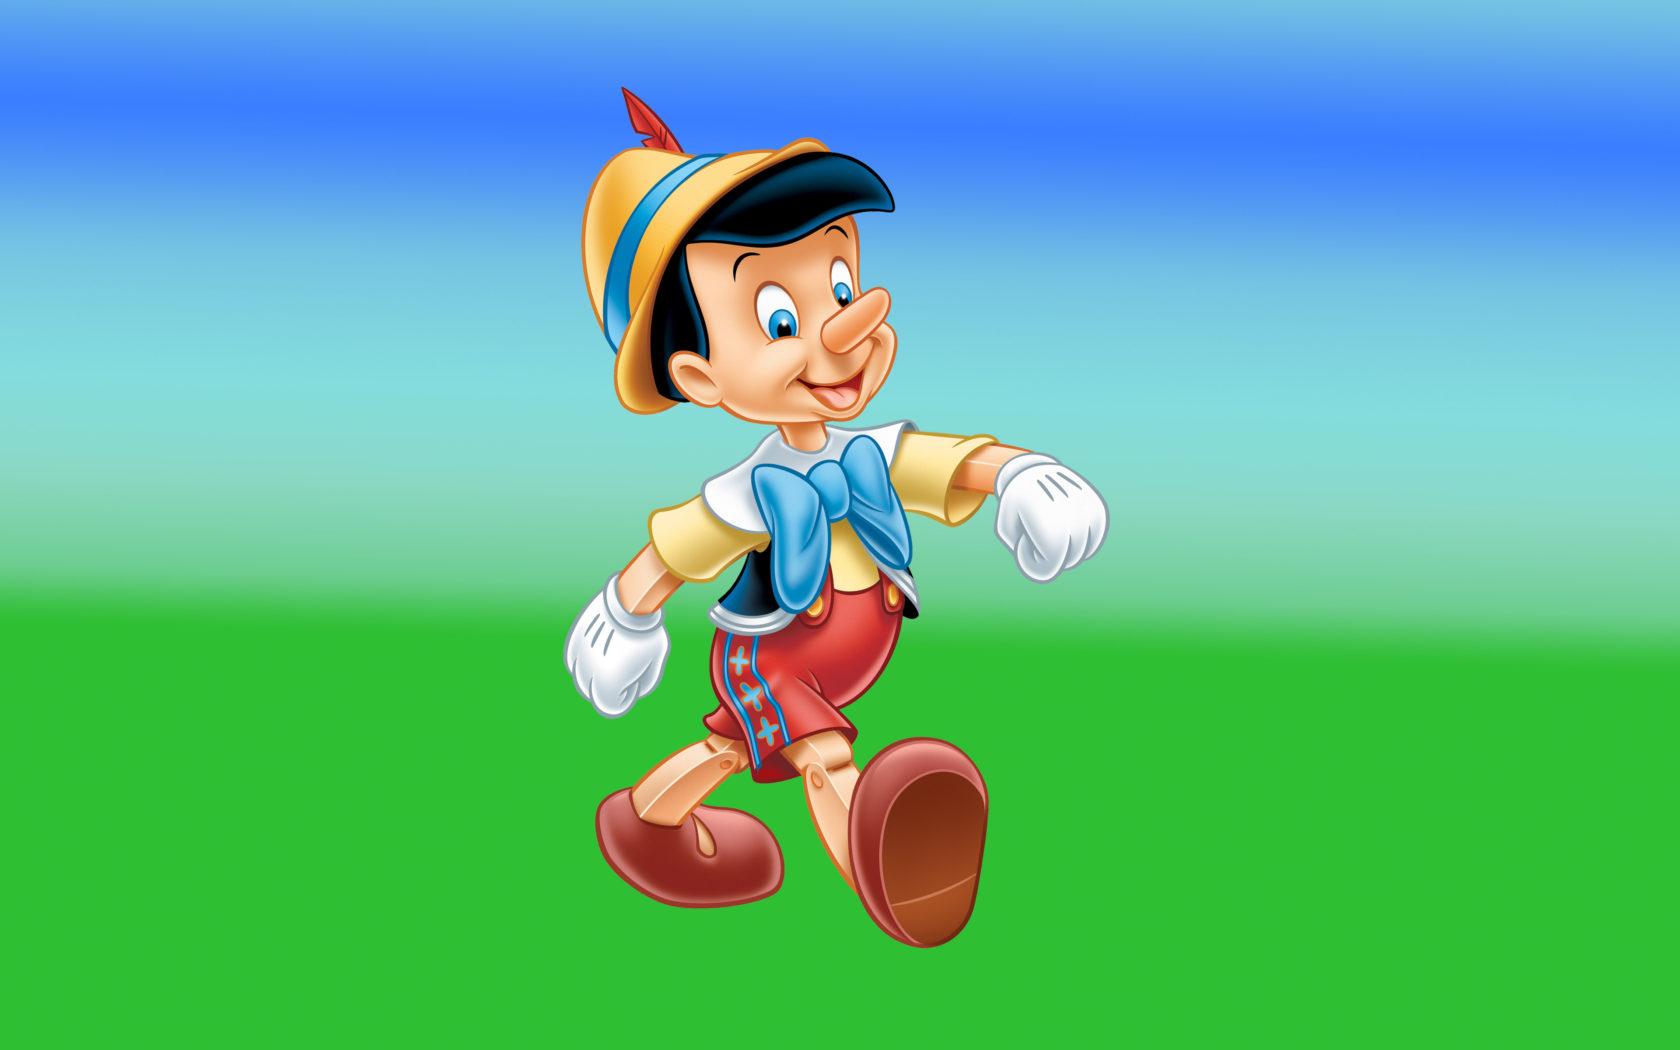 pinocchio and jiminy cricket cartoon comedy new desktop hd wallpapers for pc tablet and mobile